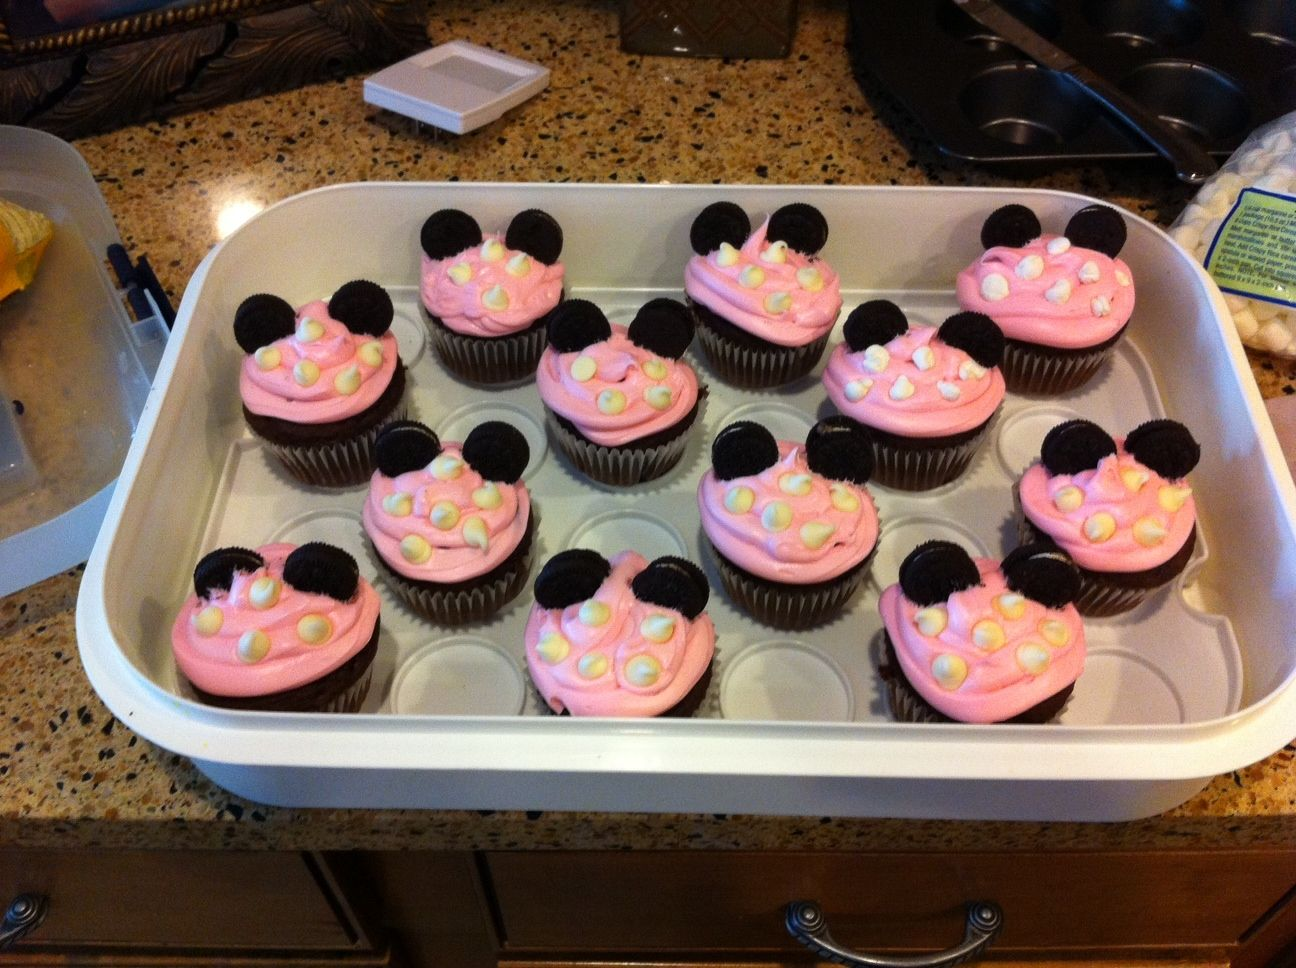 Shelbeys first birthday ideas Kidos birthdays Pinterest